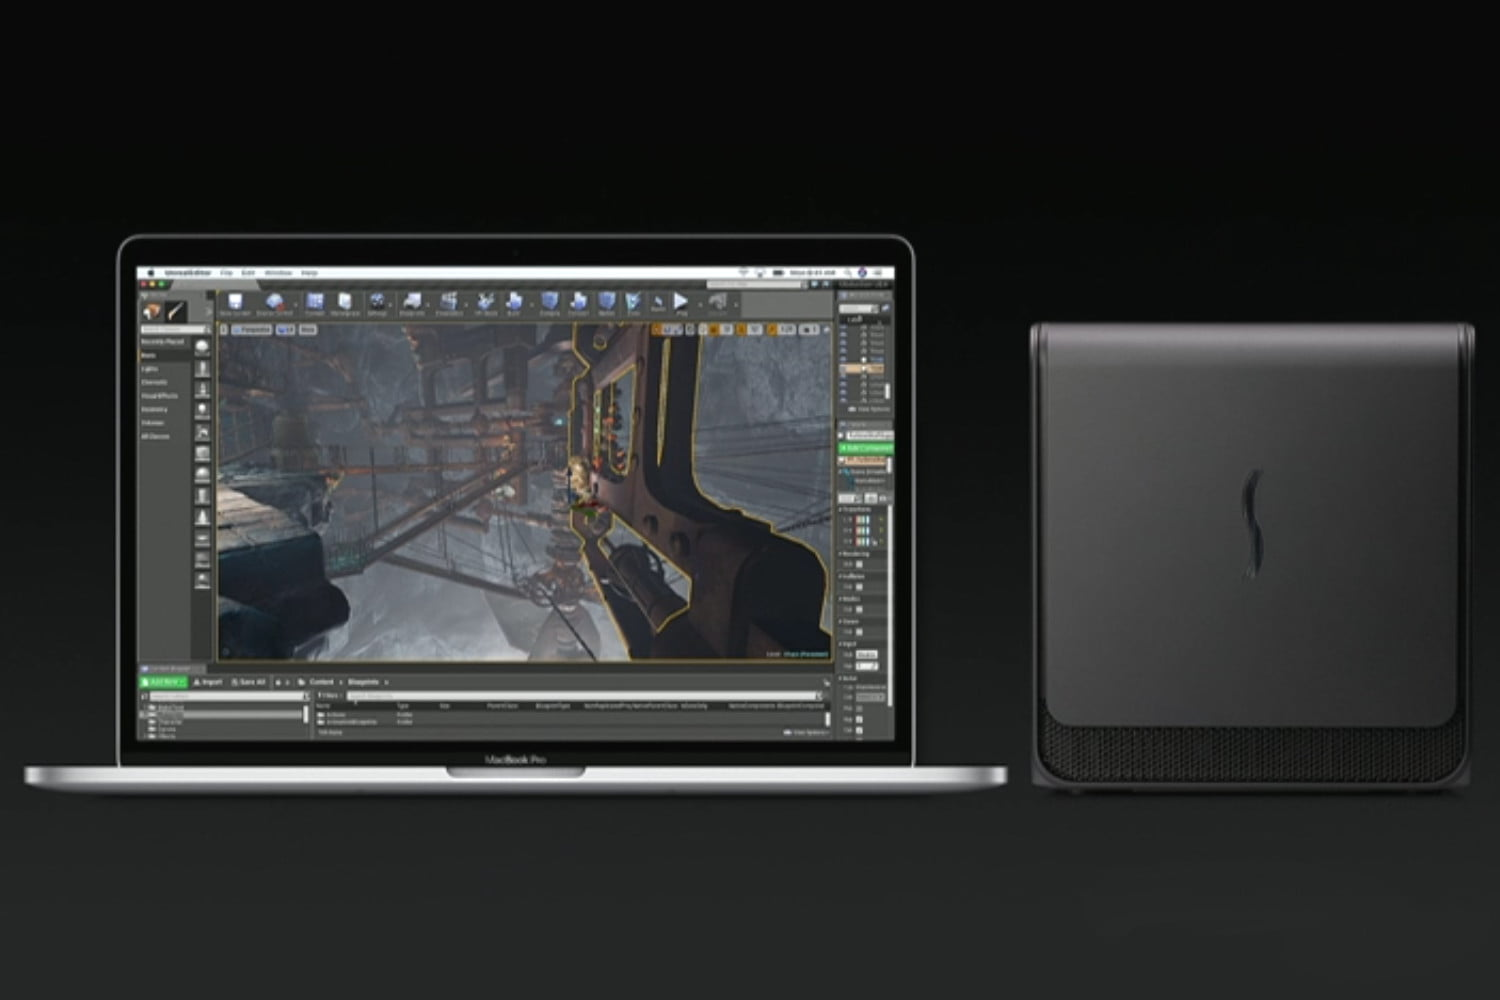 External Graphics Card Support Arrives on MacOS, But Not All